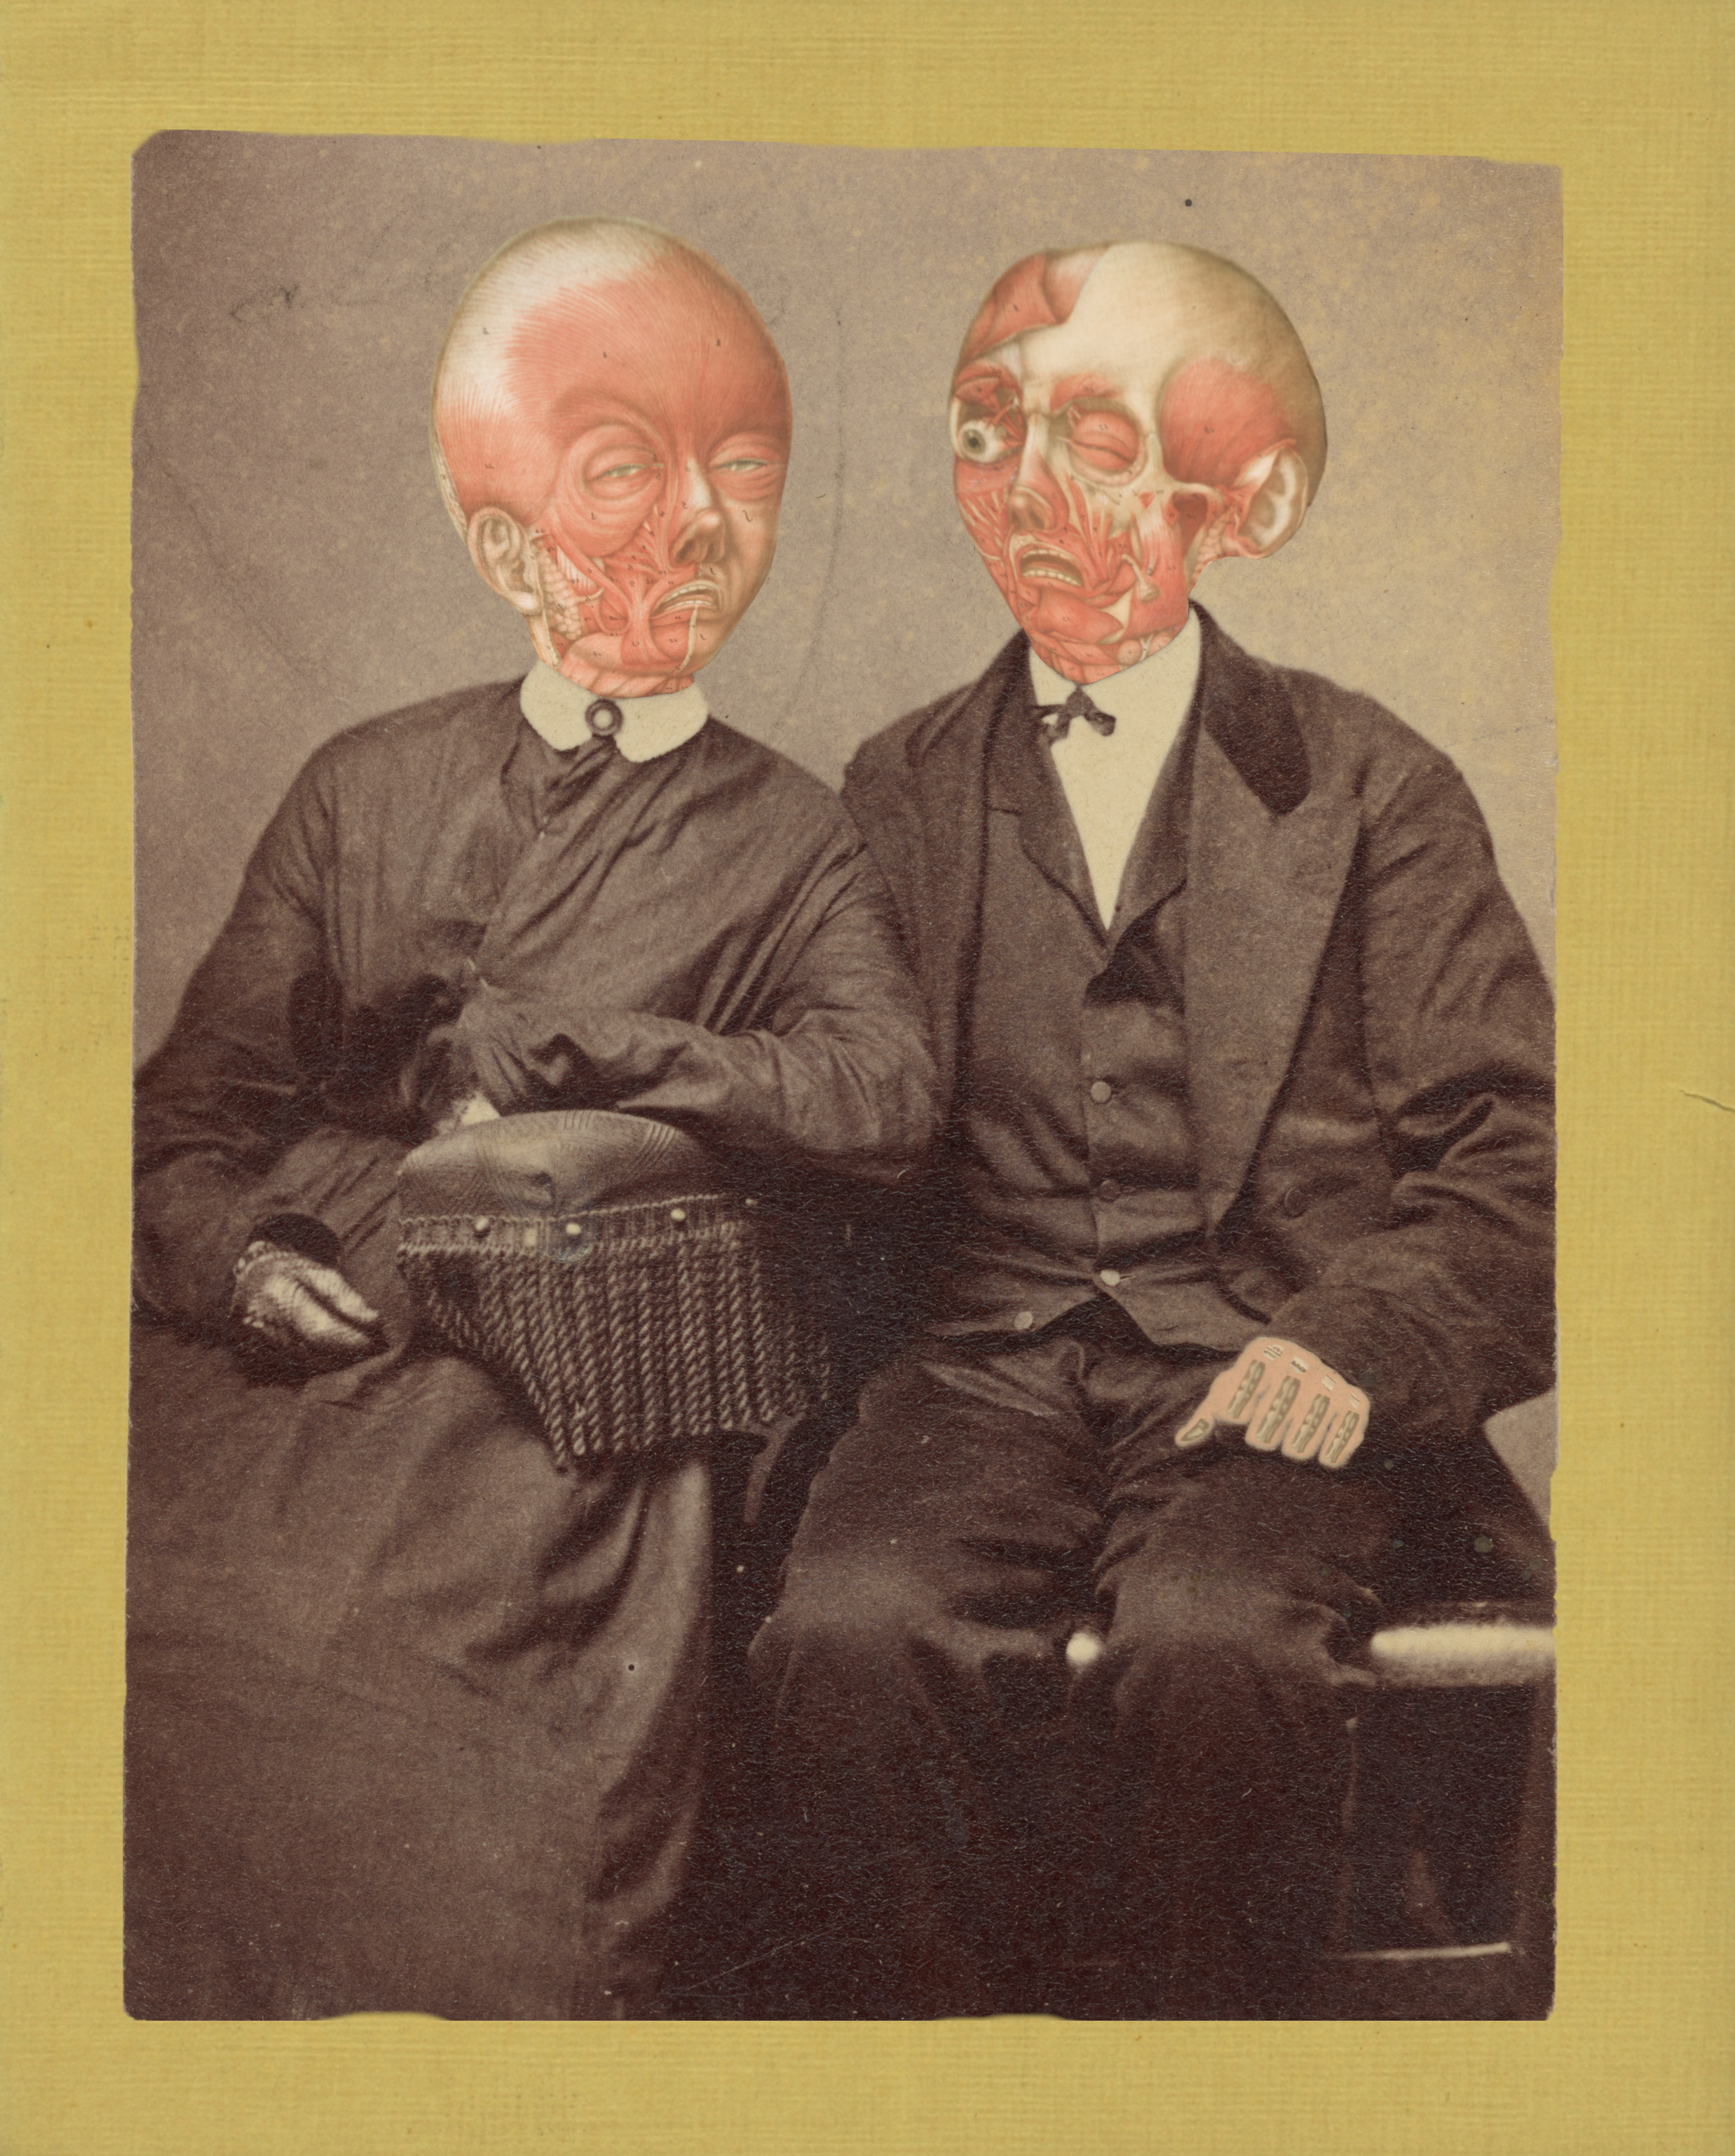 The Anatomical Couple